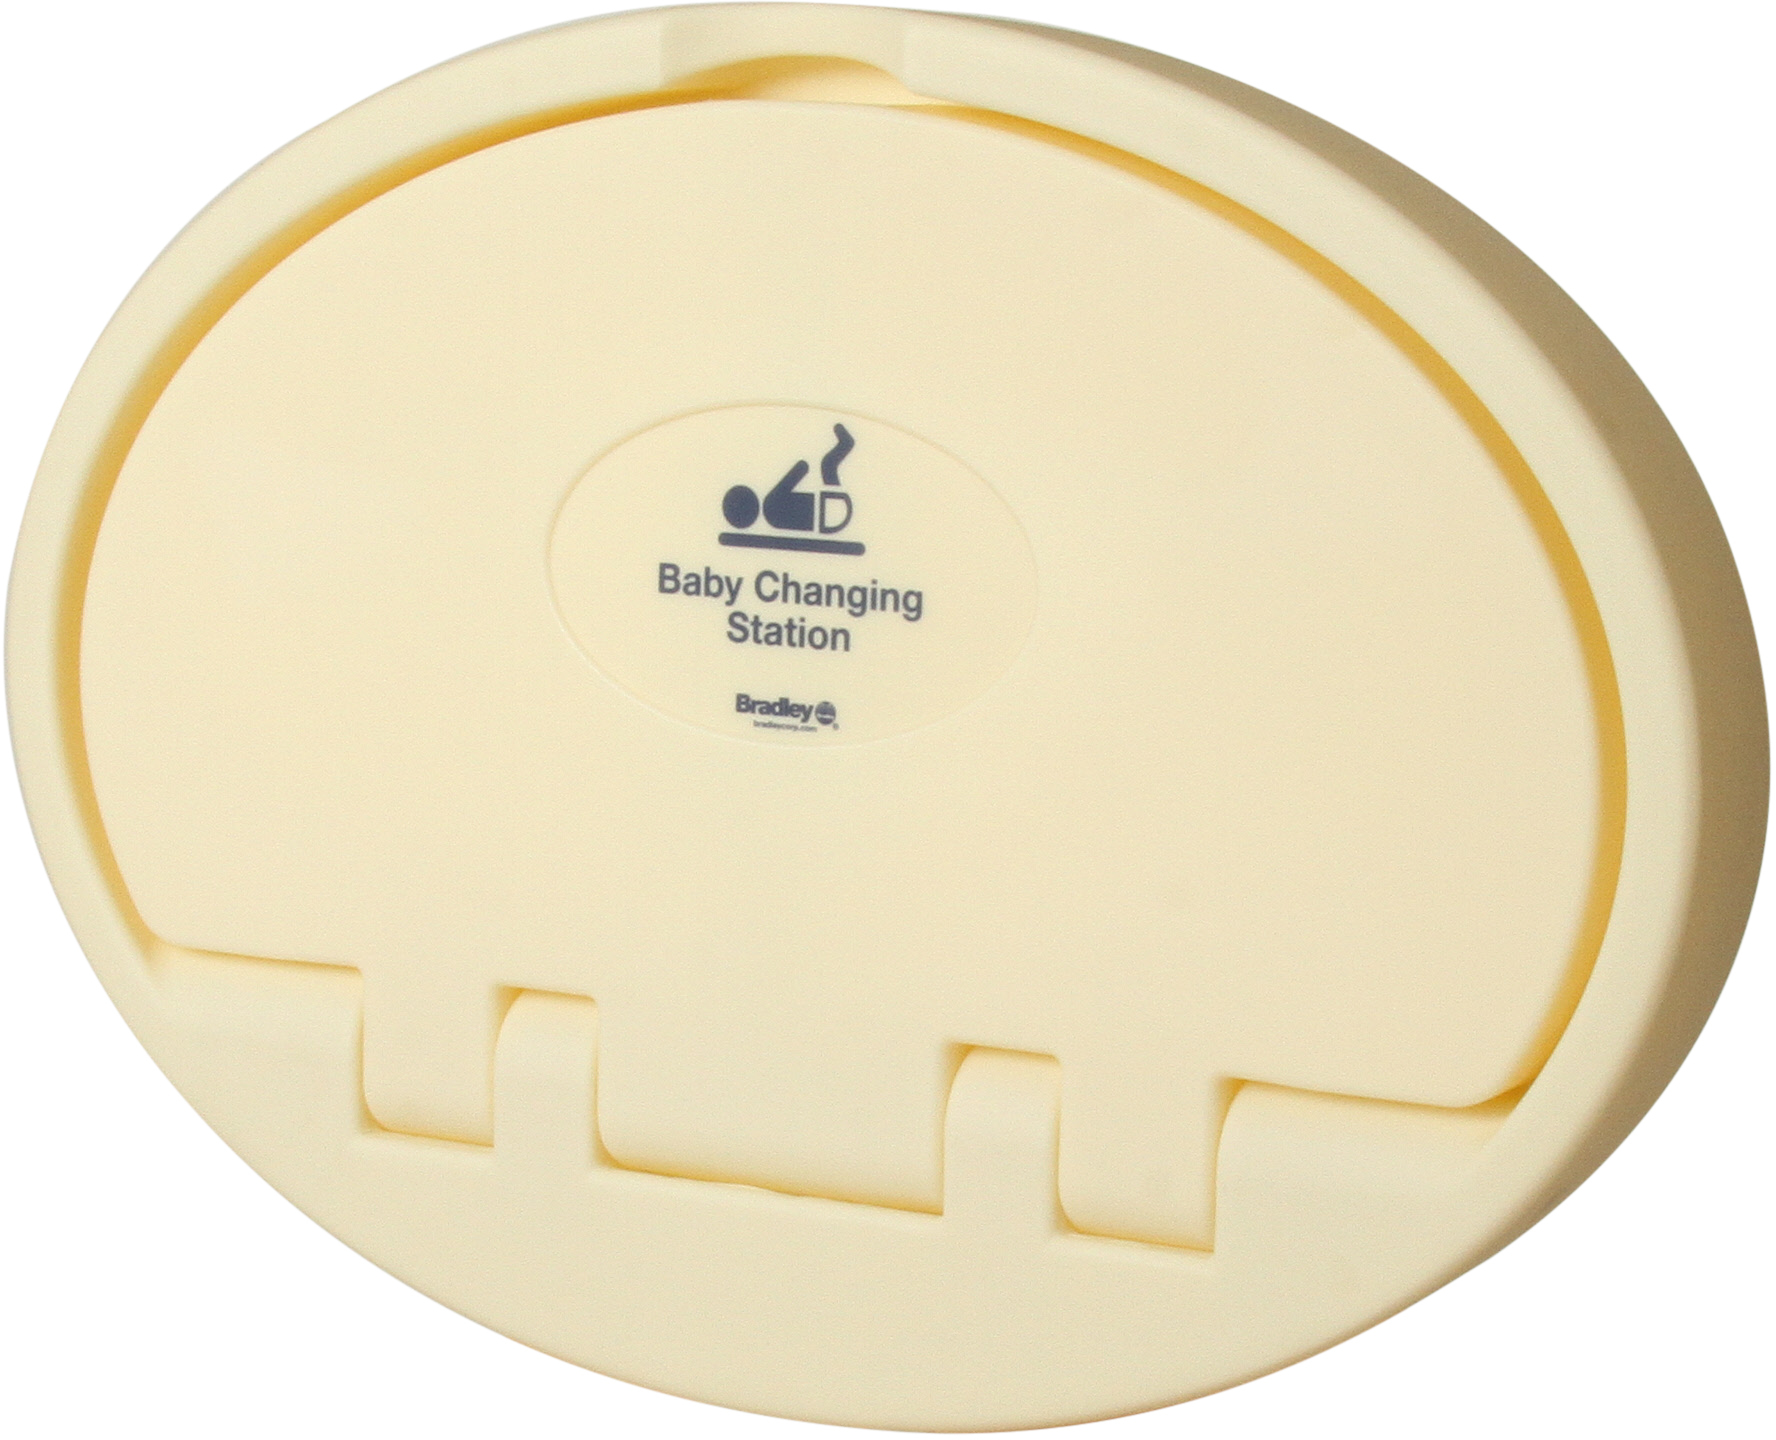 Bradley 9612 Baby Changing Station - Ivory